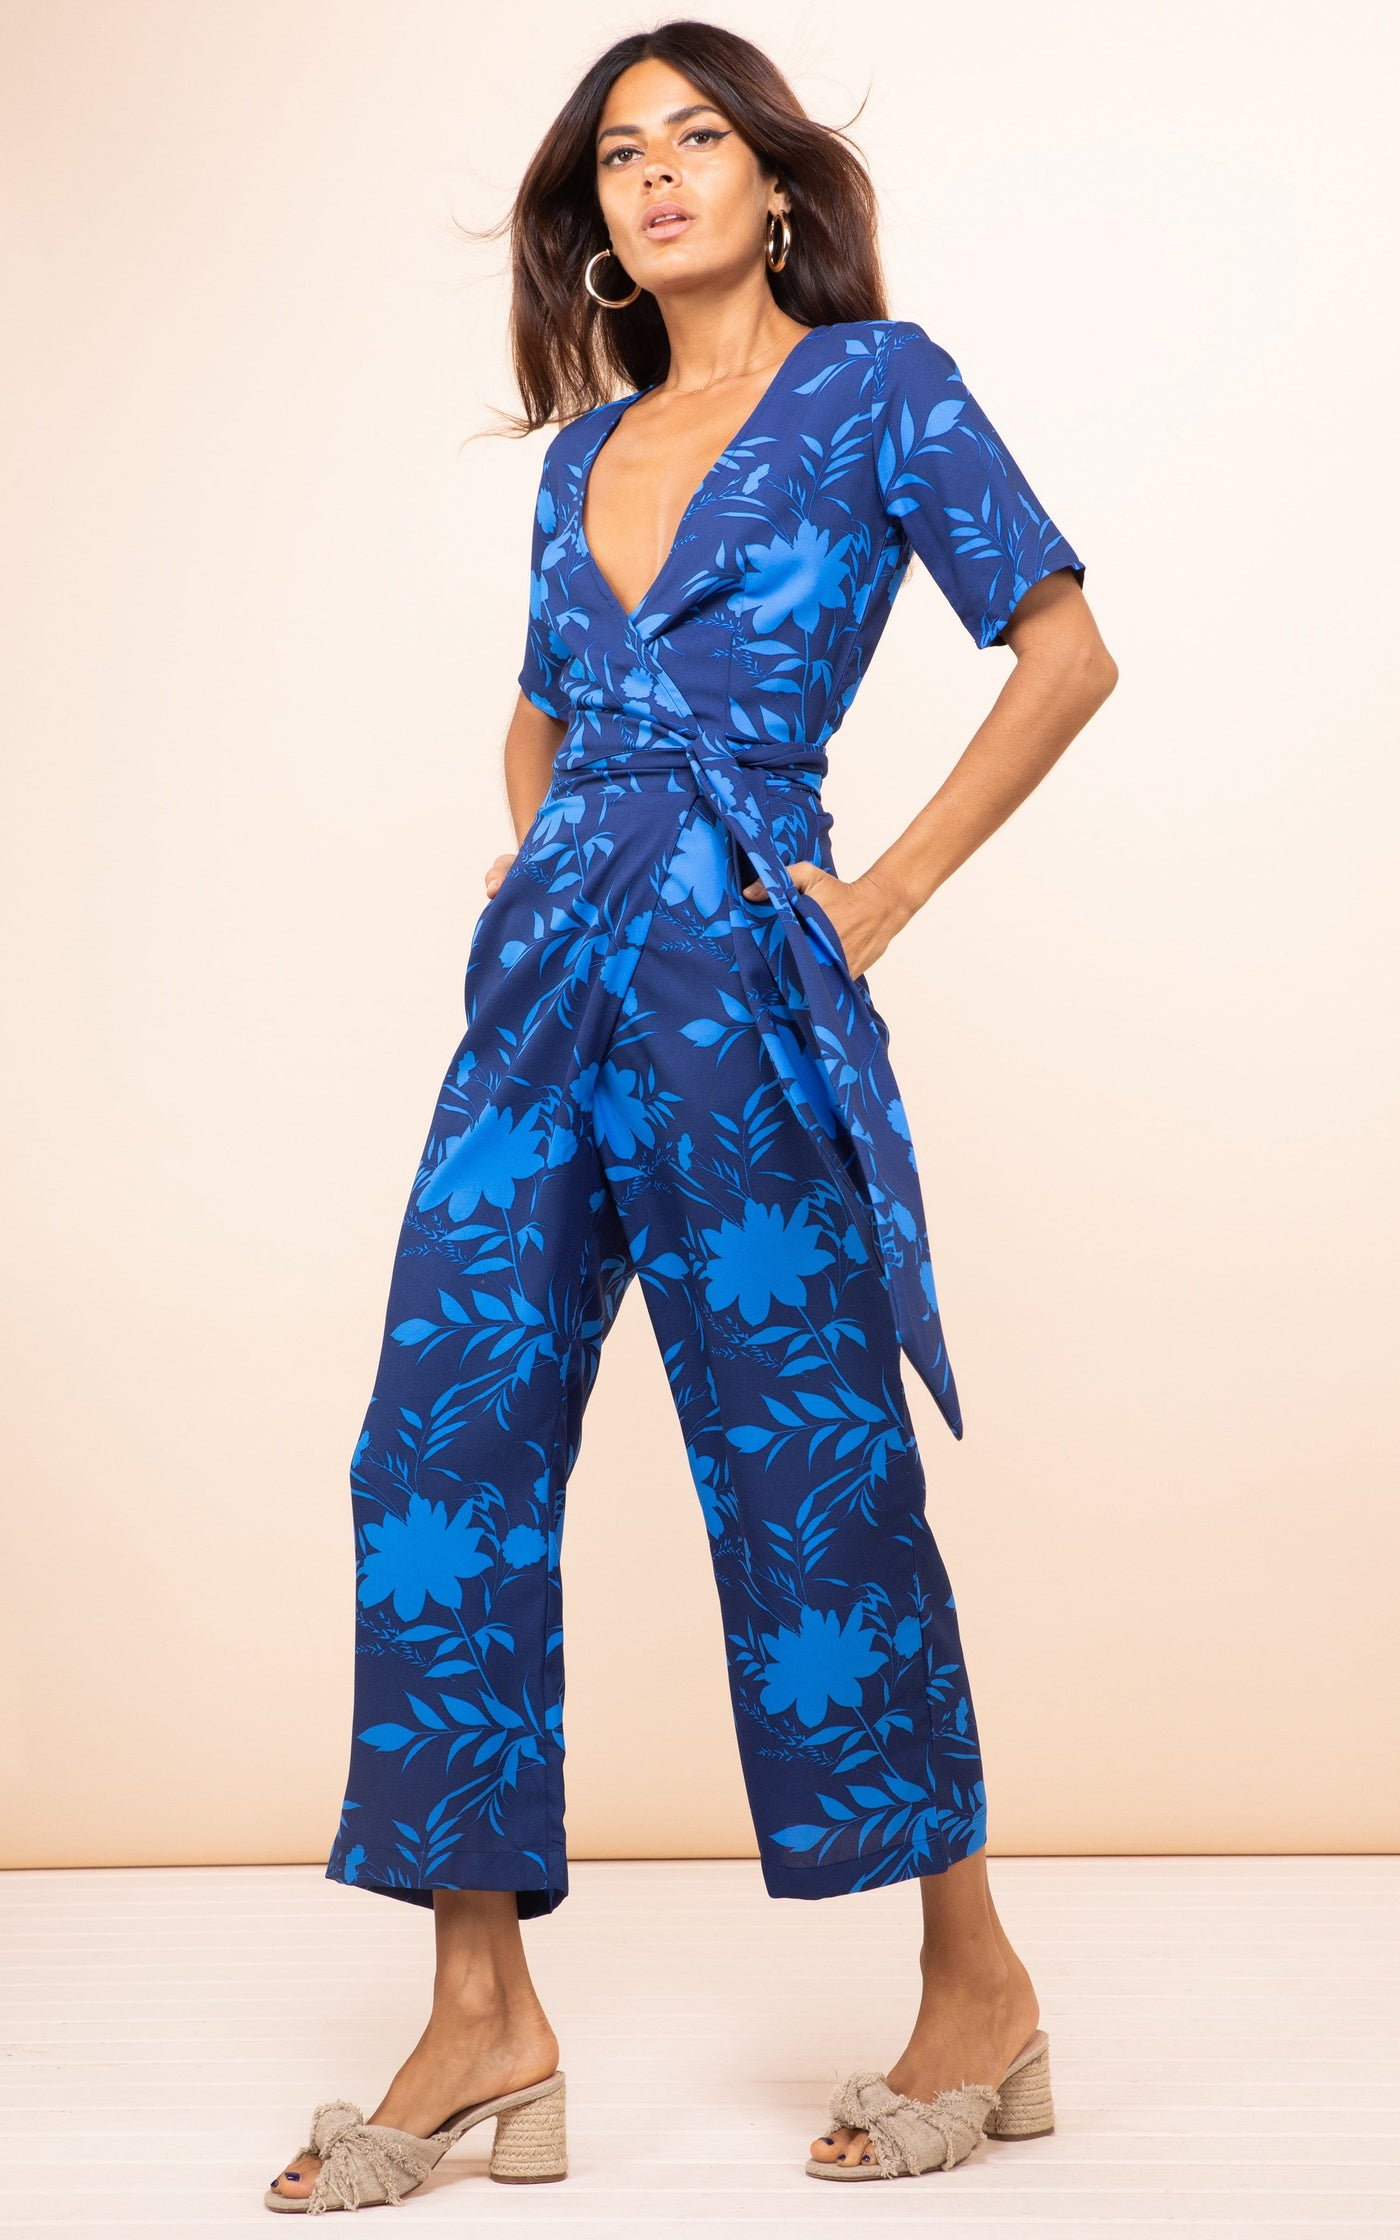 Front-facing model with hands in pockets wearing Dancing Leopard Atlantis Wrap Jumpsuit in blue floral print